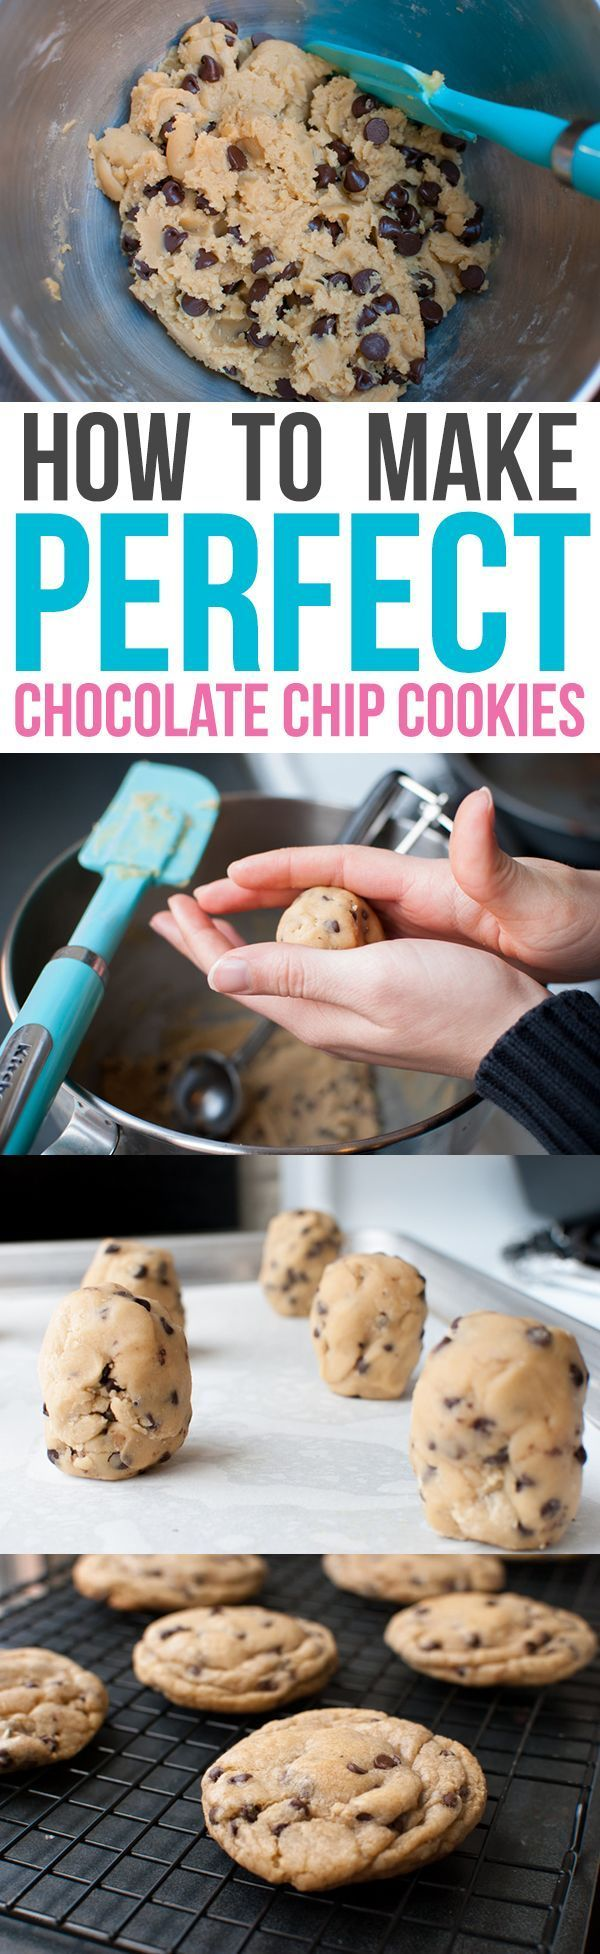 We are talking about perfection. The PERFECT chocolate chip cookie recipe